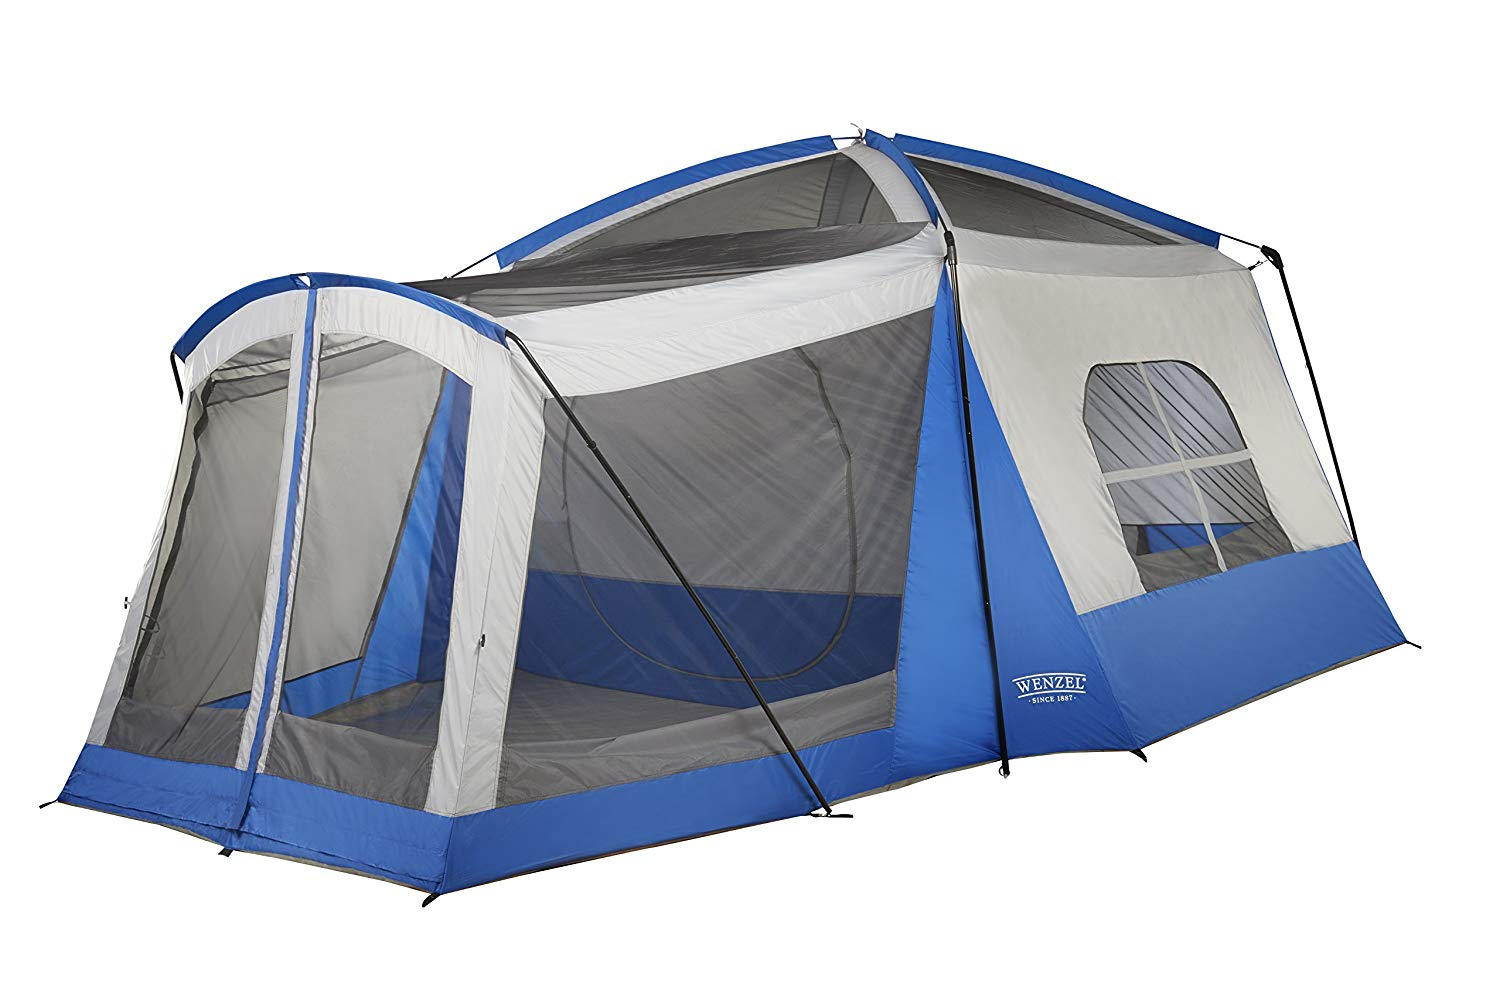 Camping tent Reviews